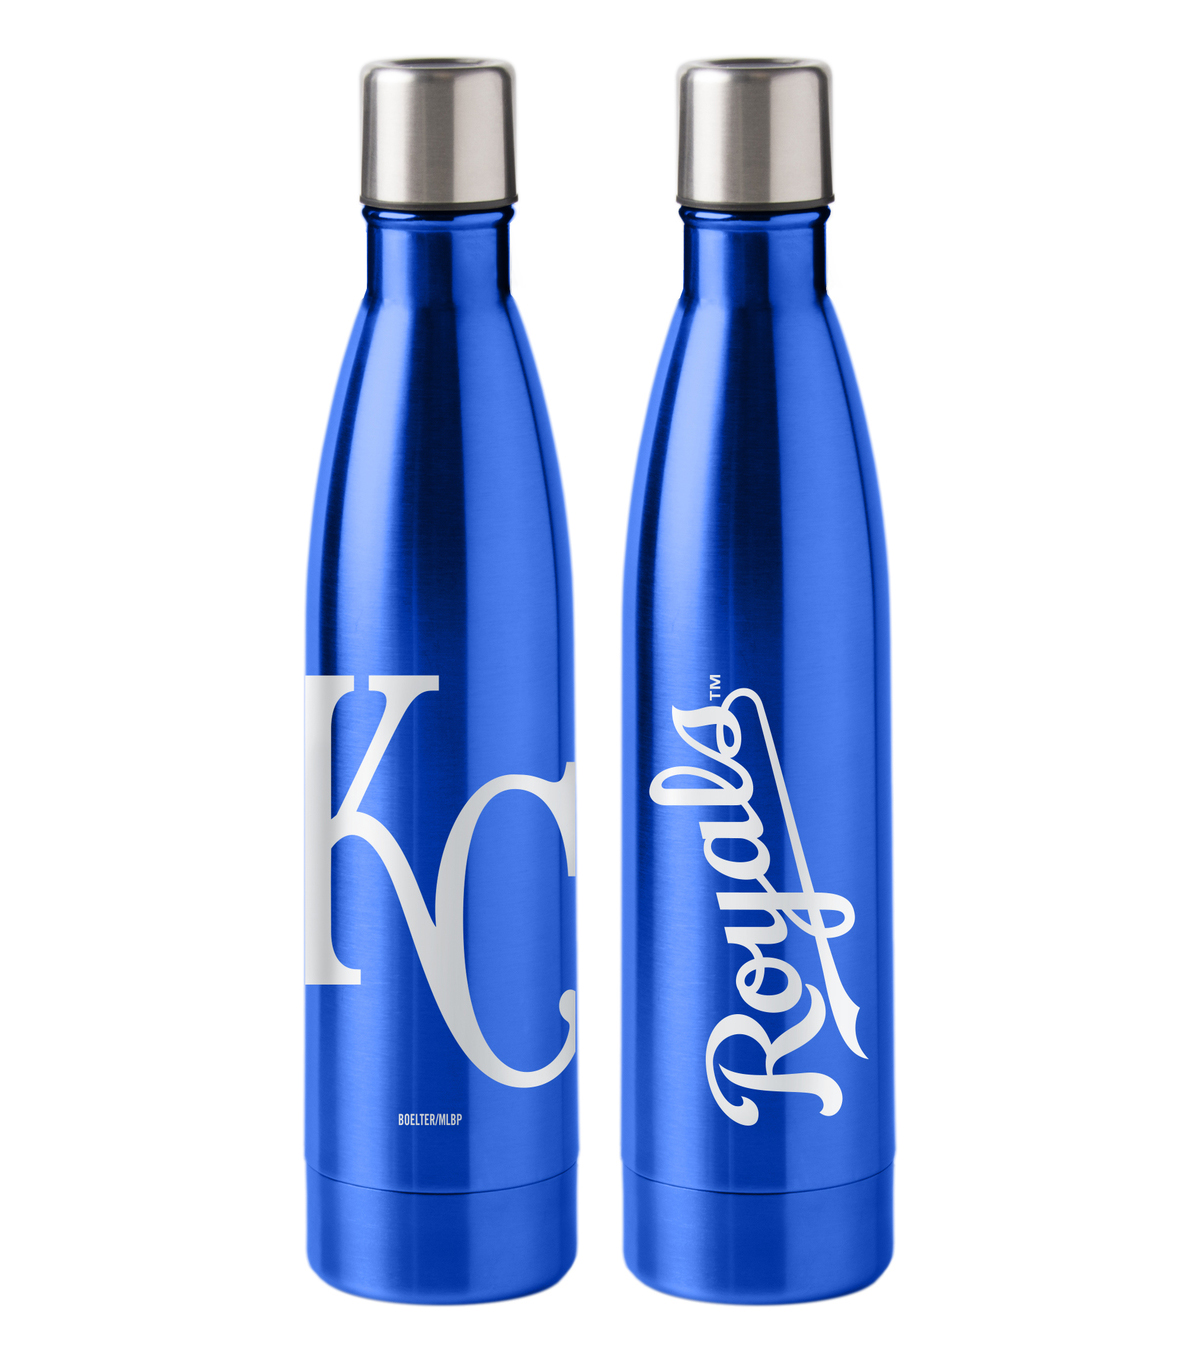 Kansas City Royals 18 oz Insulated Stainless Steel Water Bottle